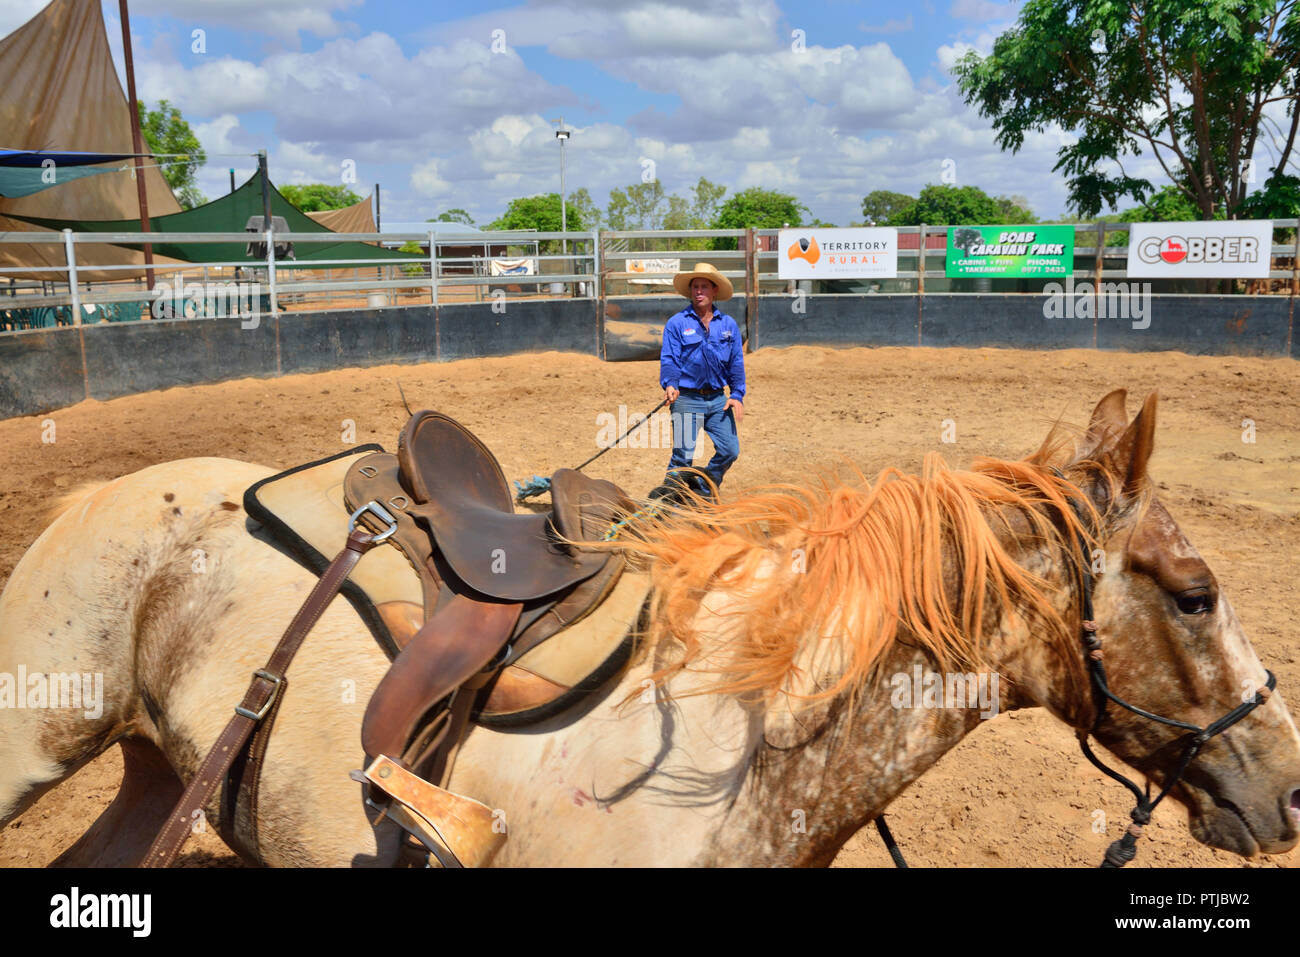 Tom Curtain the singing cowboy performing in his Outback Experience show in Katherine,Northern Territory, schooling  a young unridden wild horse. - Stock Image